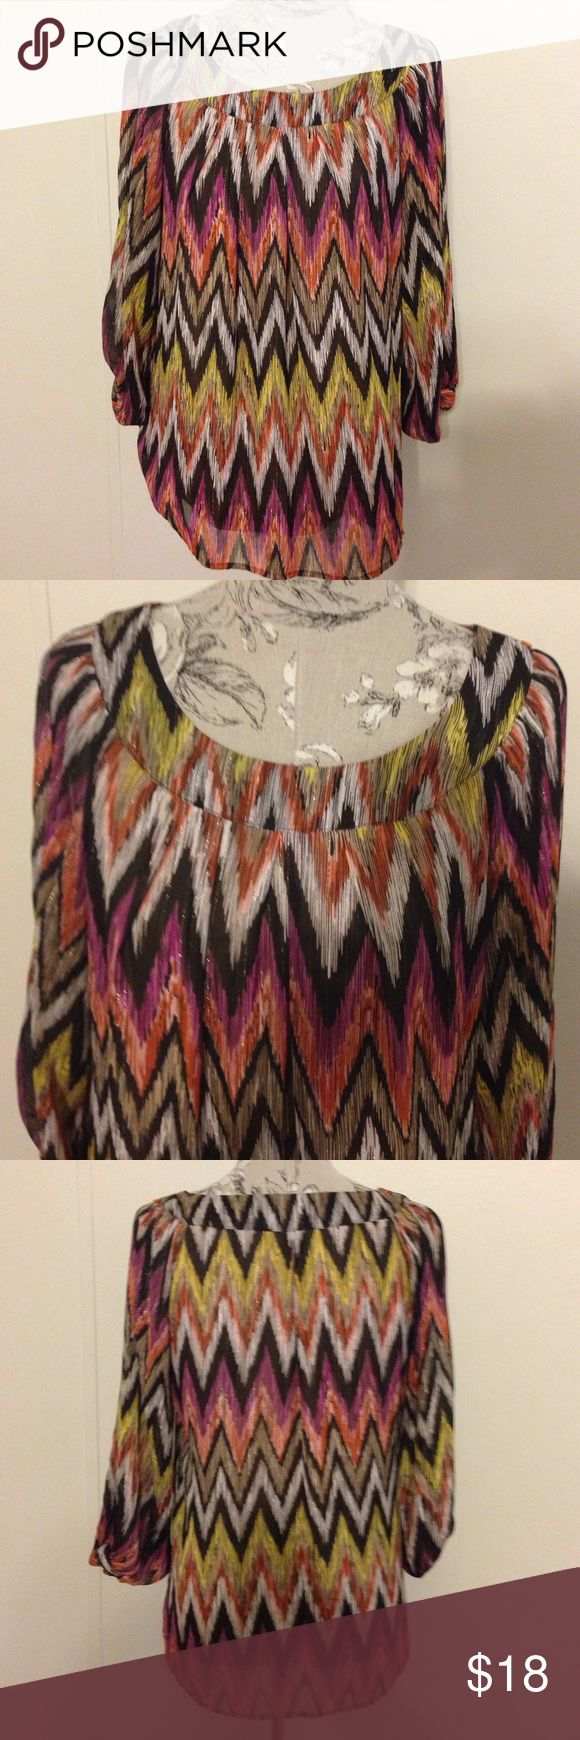 Sara Michelle Chevron Top L Excellent condition. Lined and has shiny thread in fabric. Sara Michelle Tops